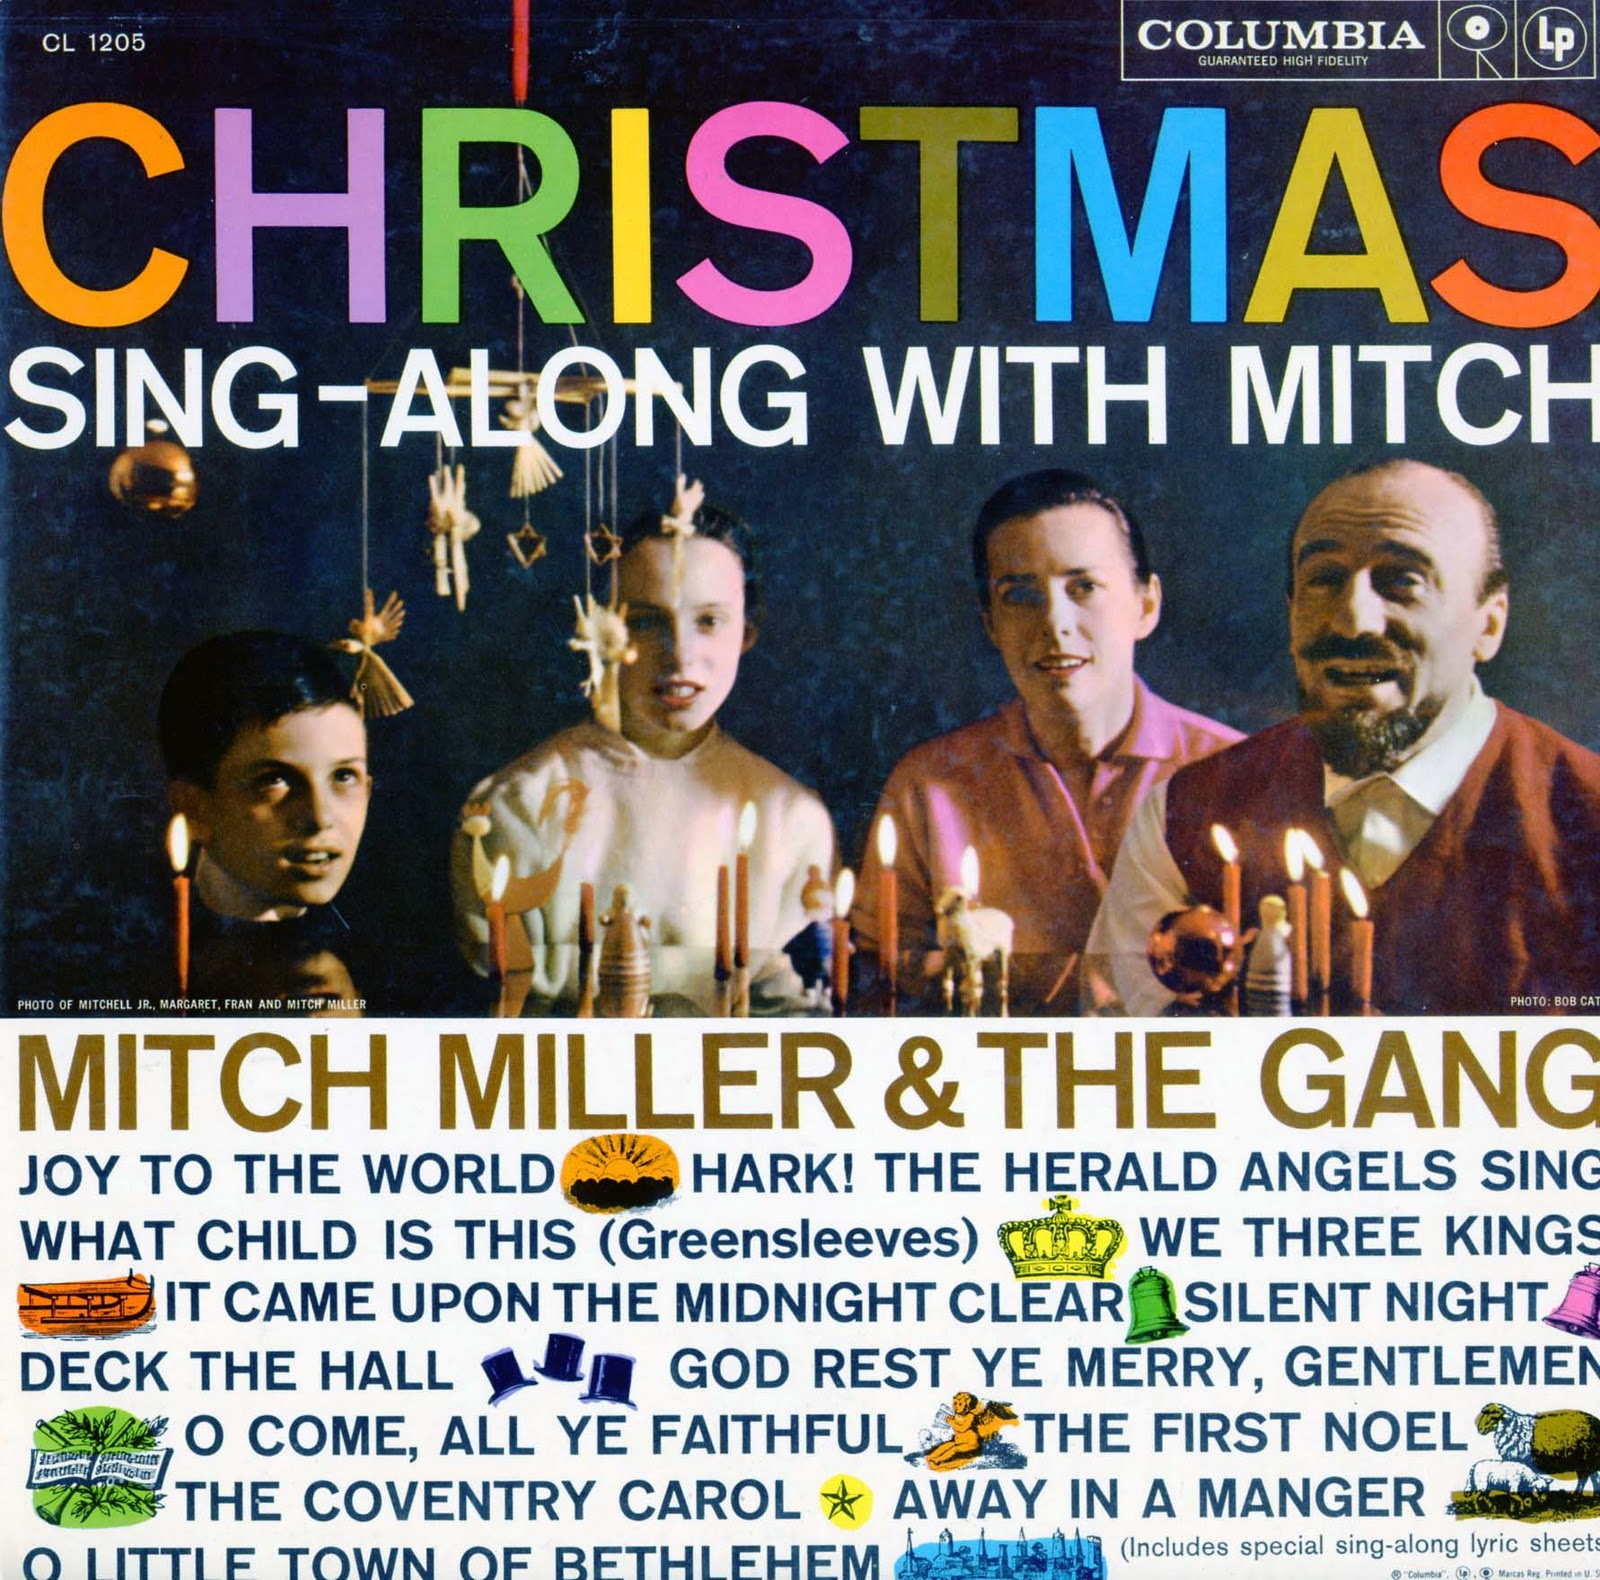 billboards best selling christmas albums of the 1960s - Best Selling Christmas Albums